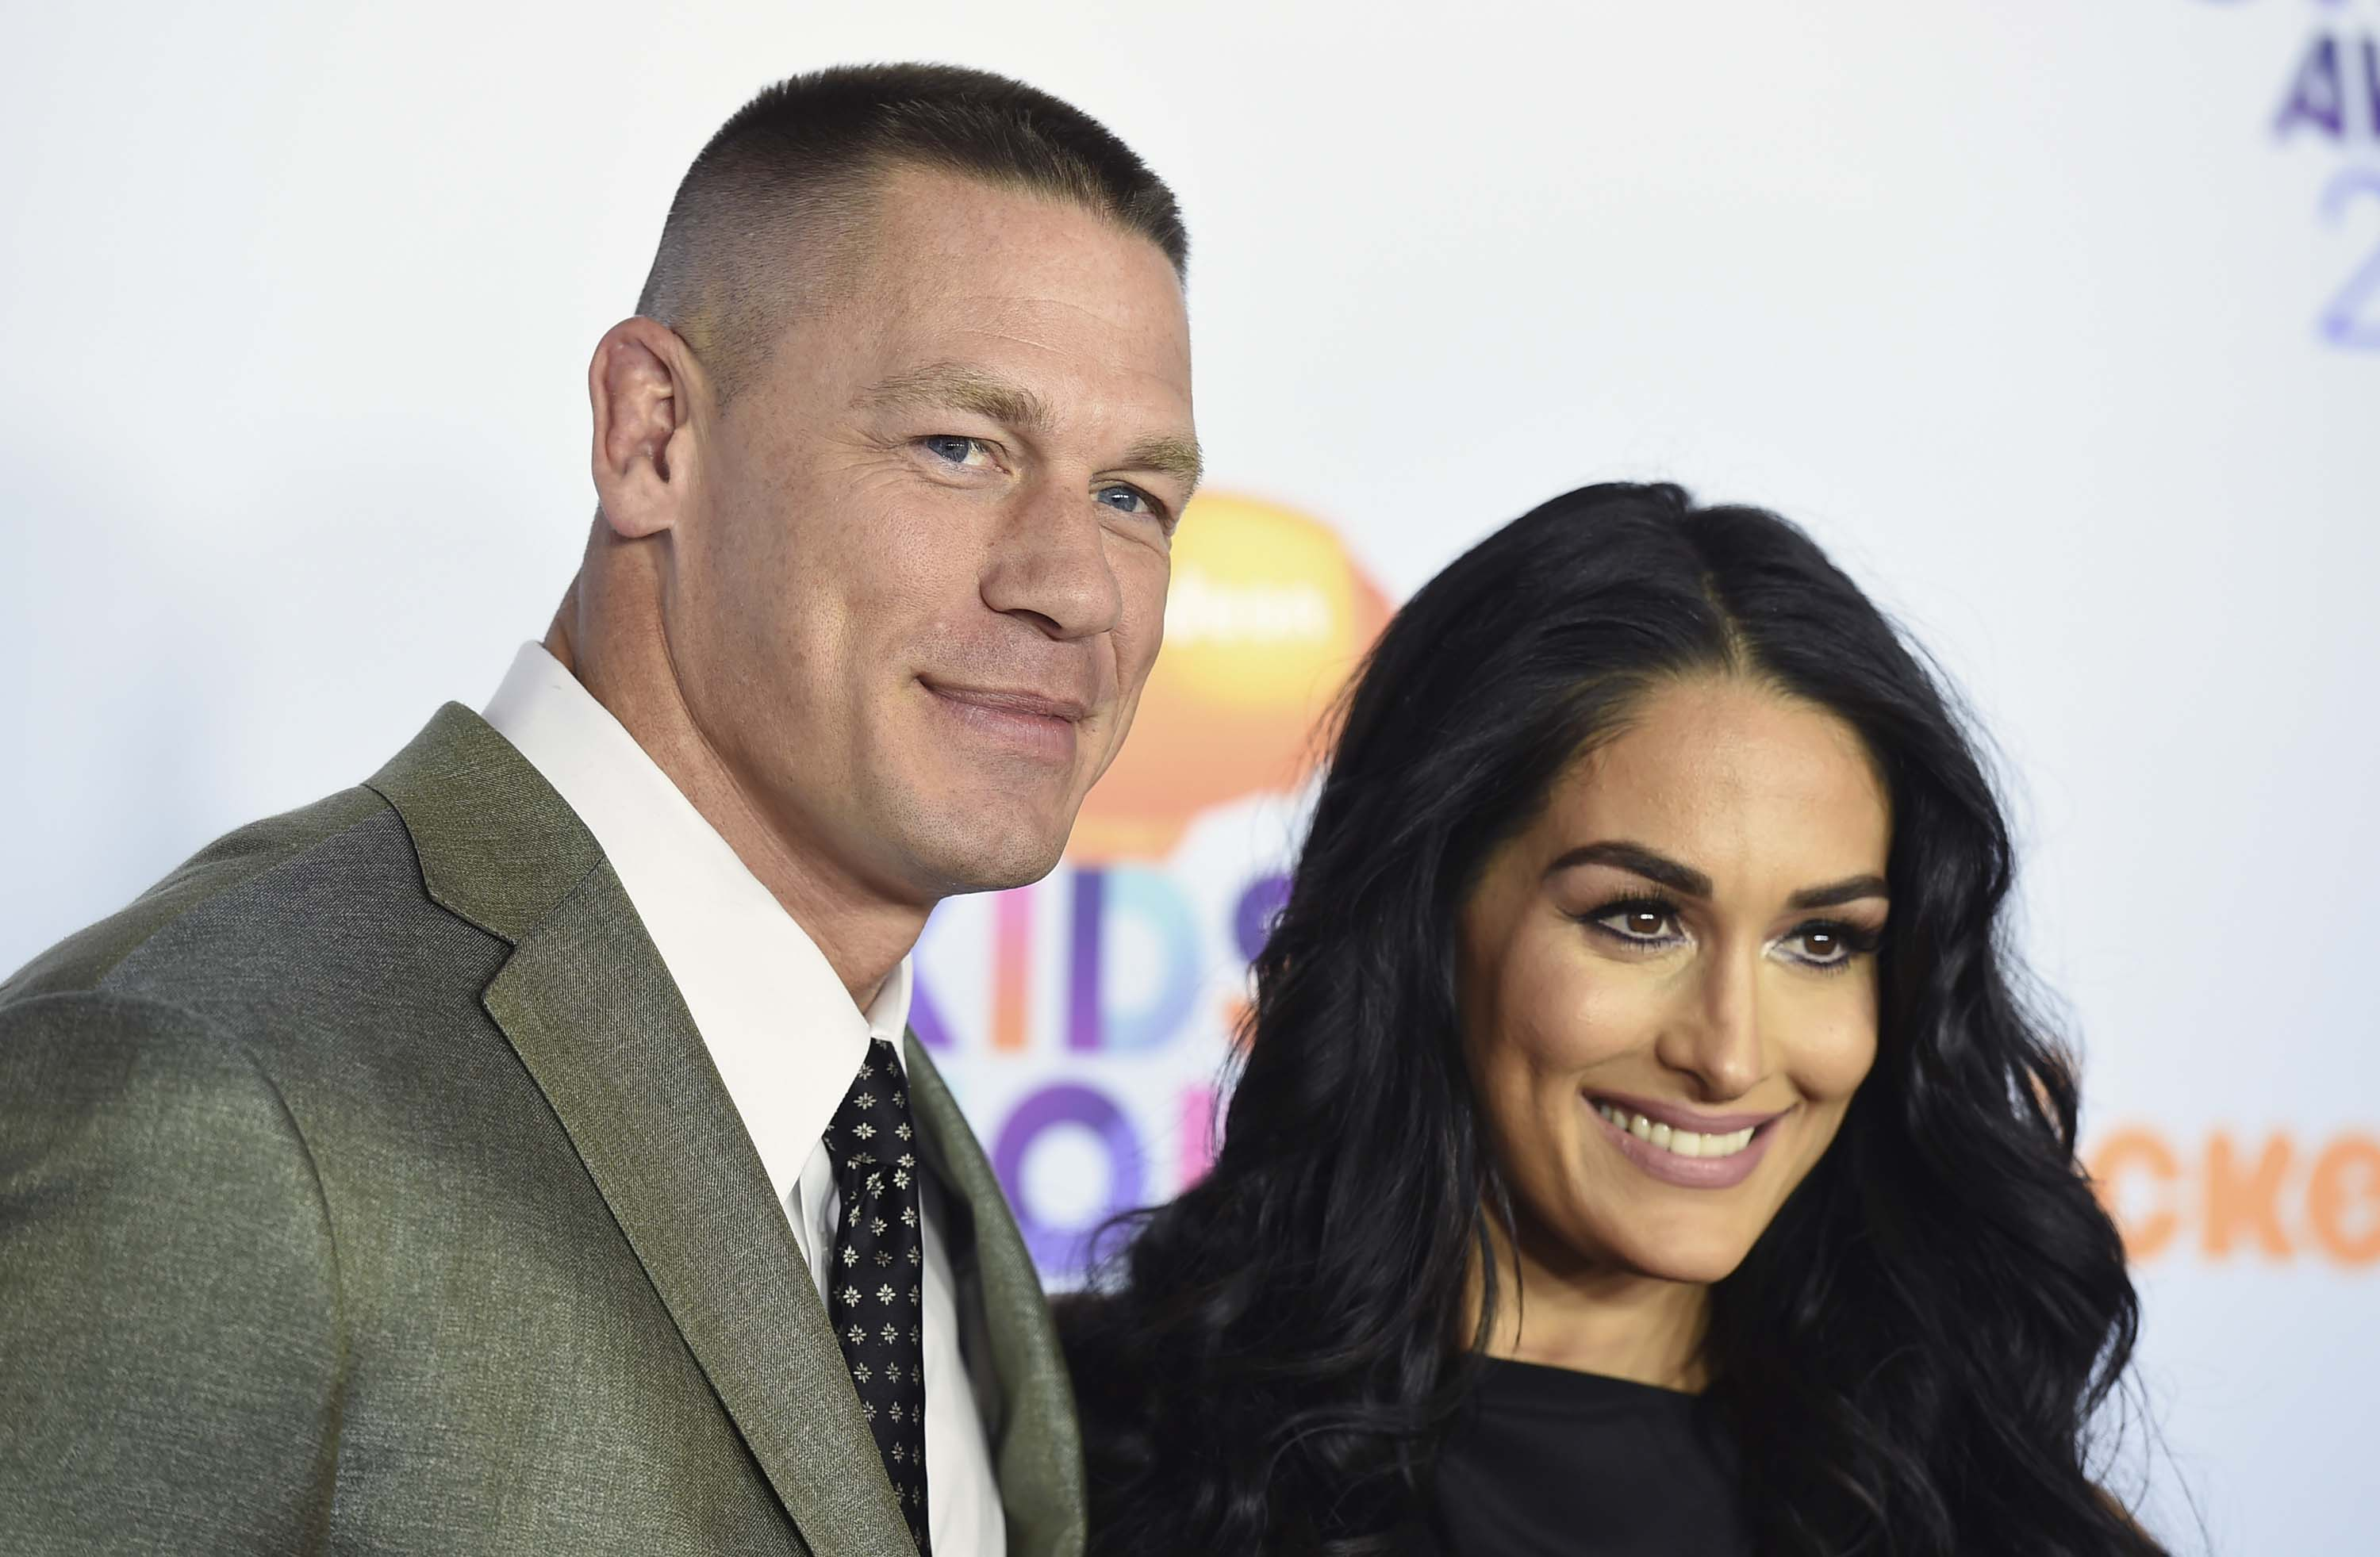 John Cena and Nikki Bella arrive at the Kids' Choice Awards at the Galen Center, on Saturday, March 11, 2017, in Los Angeles. Photo: AP